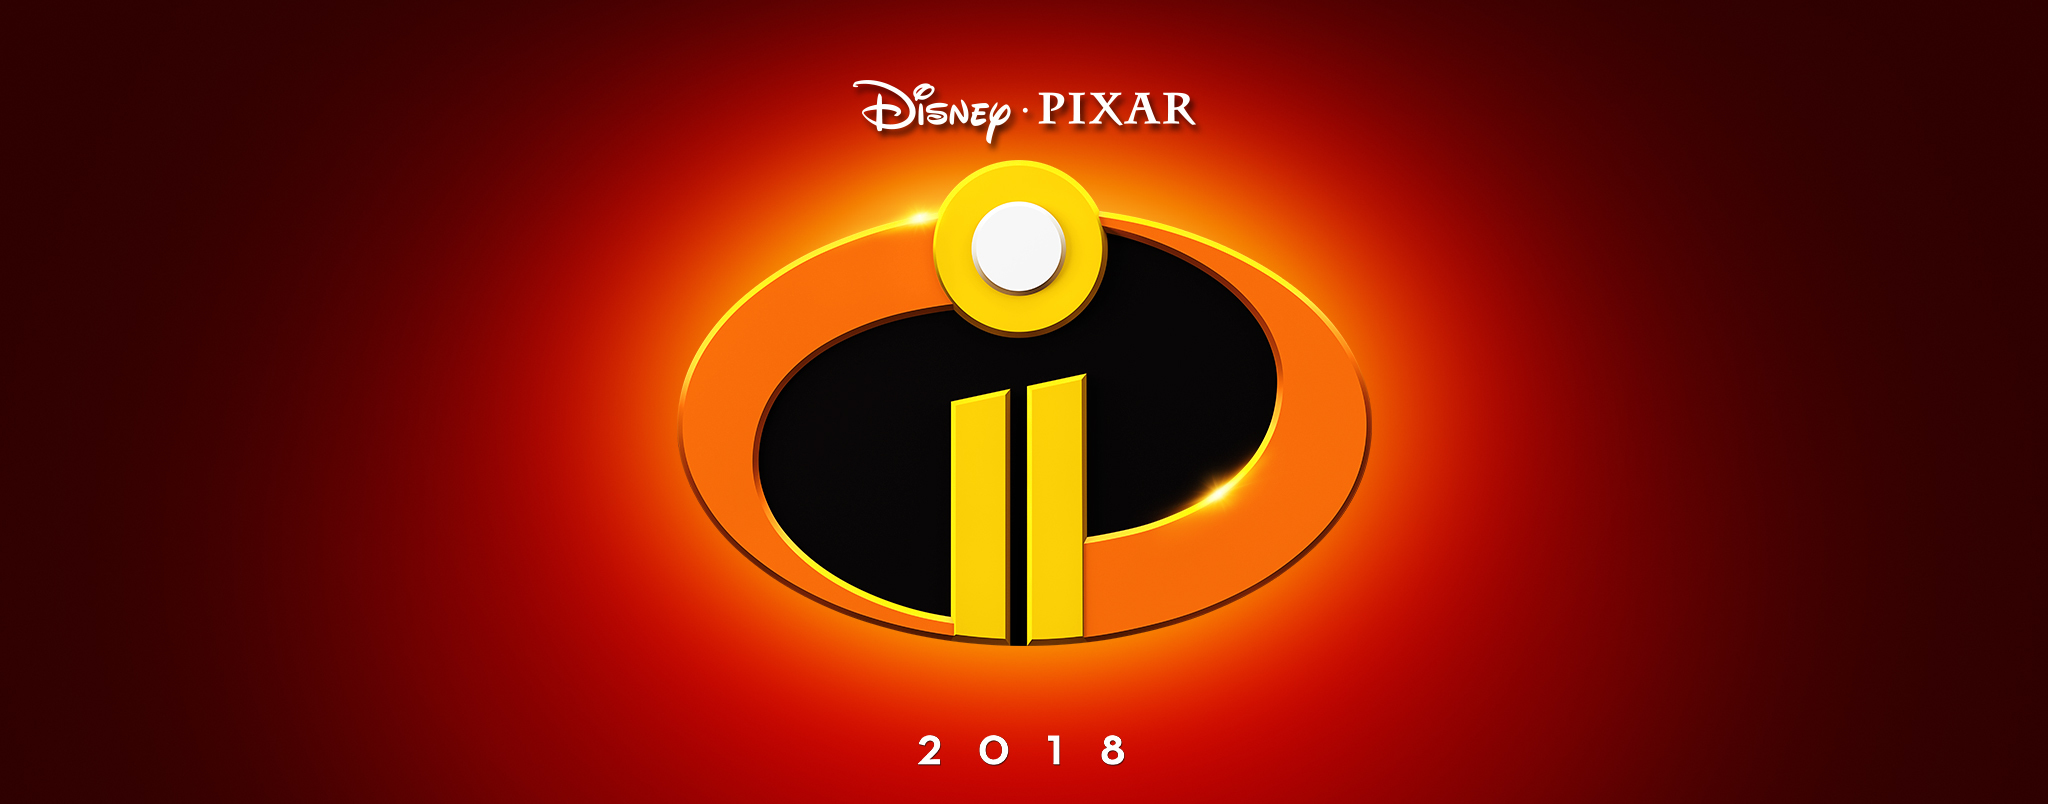 Disney Pixar's 'The Incredibles 2'